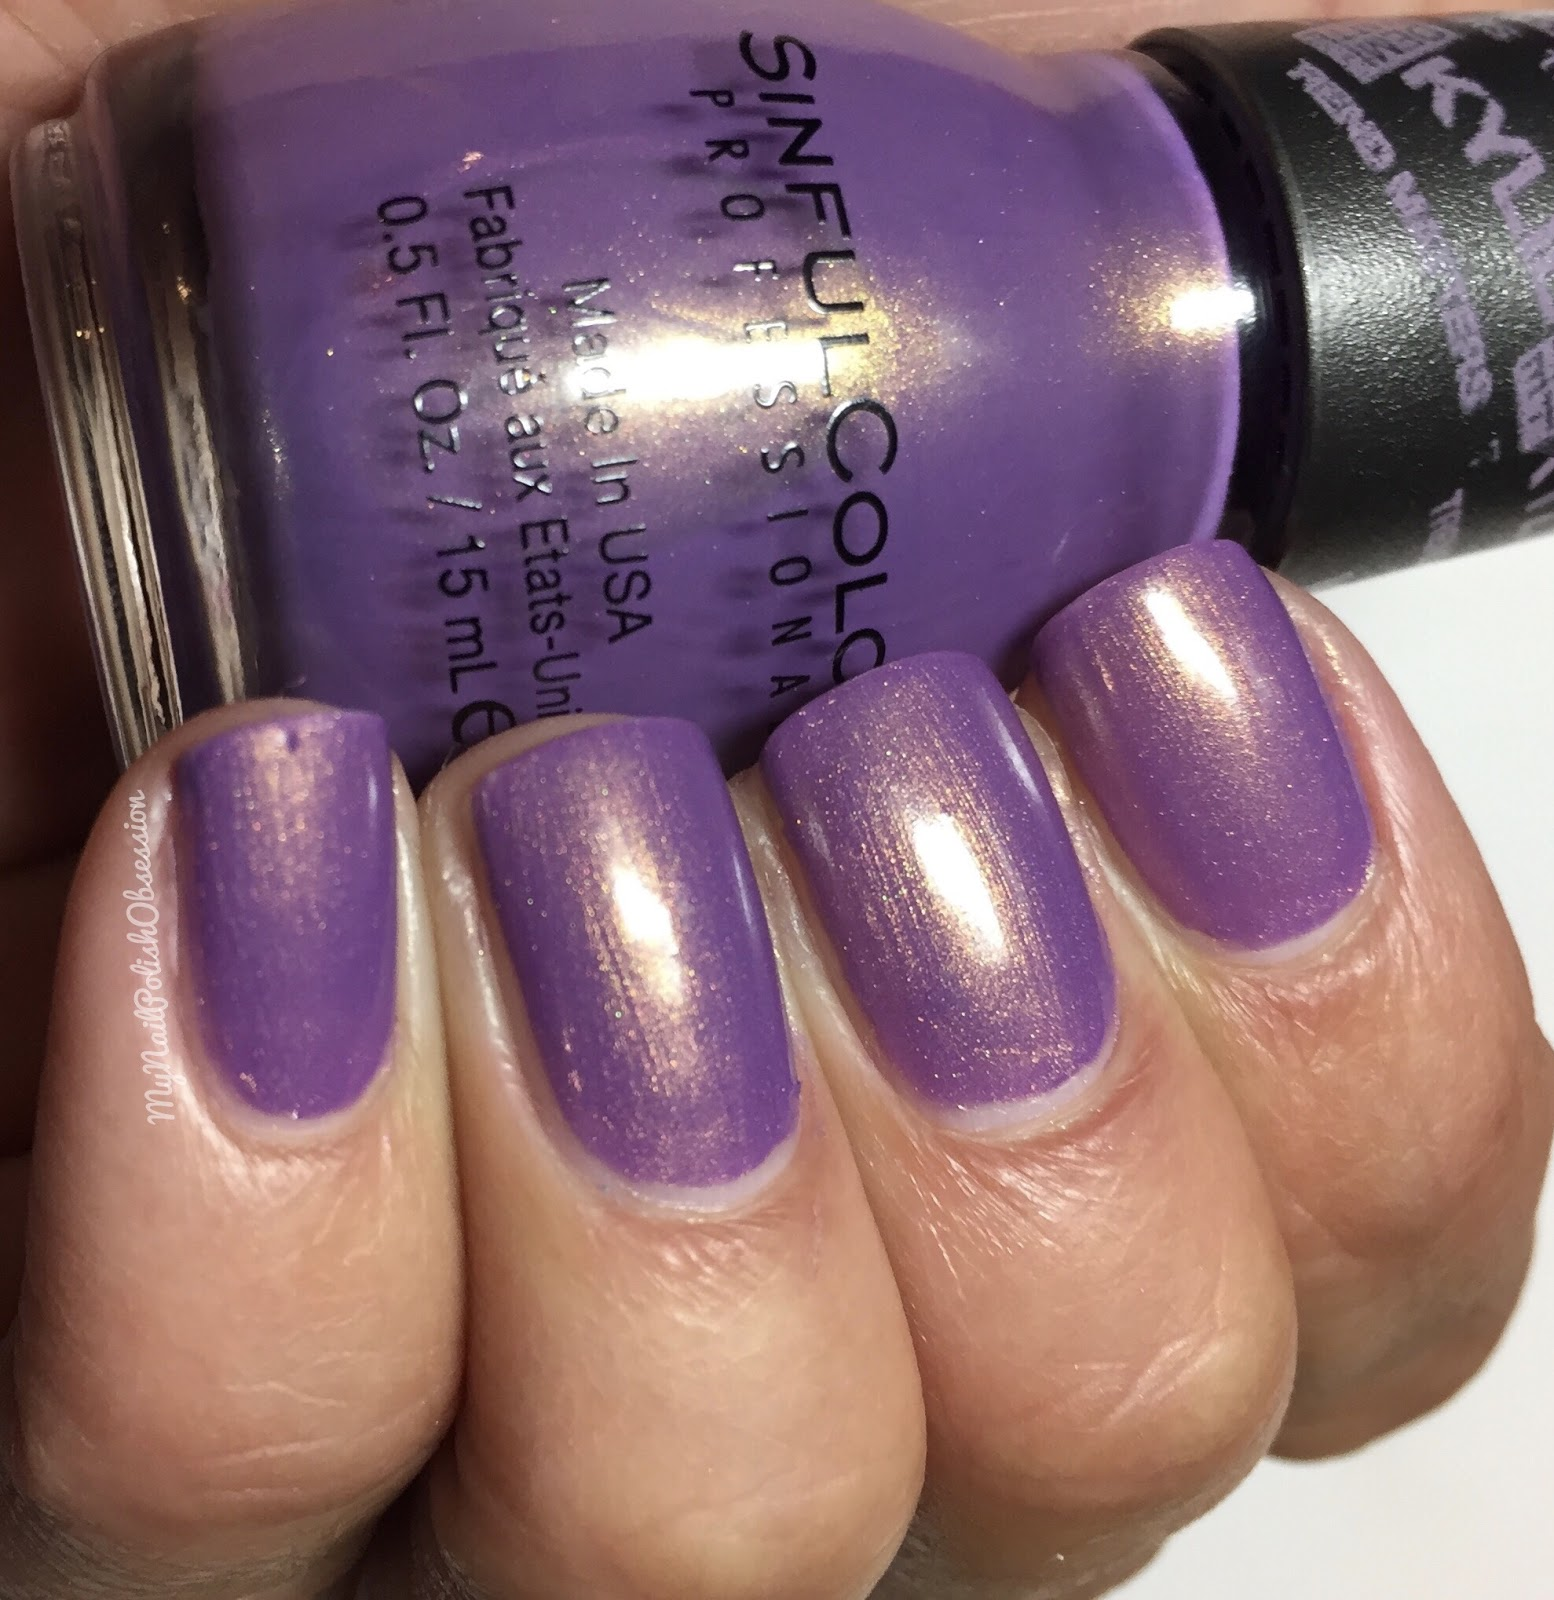 My Nail Polish Obsession: Sinful Colors Kylie Jenner Trend Matters ...